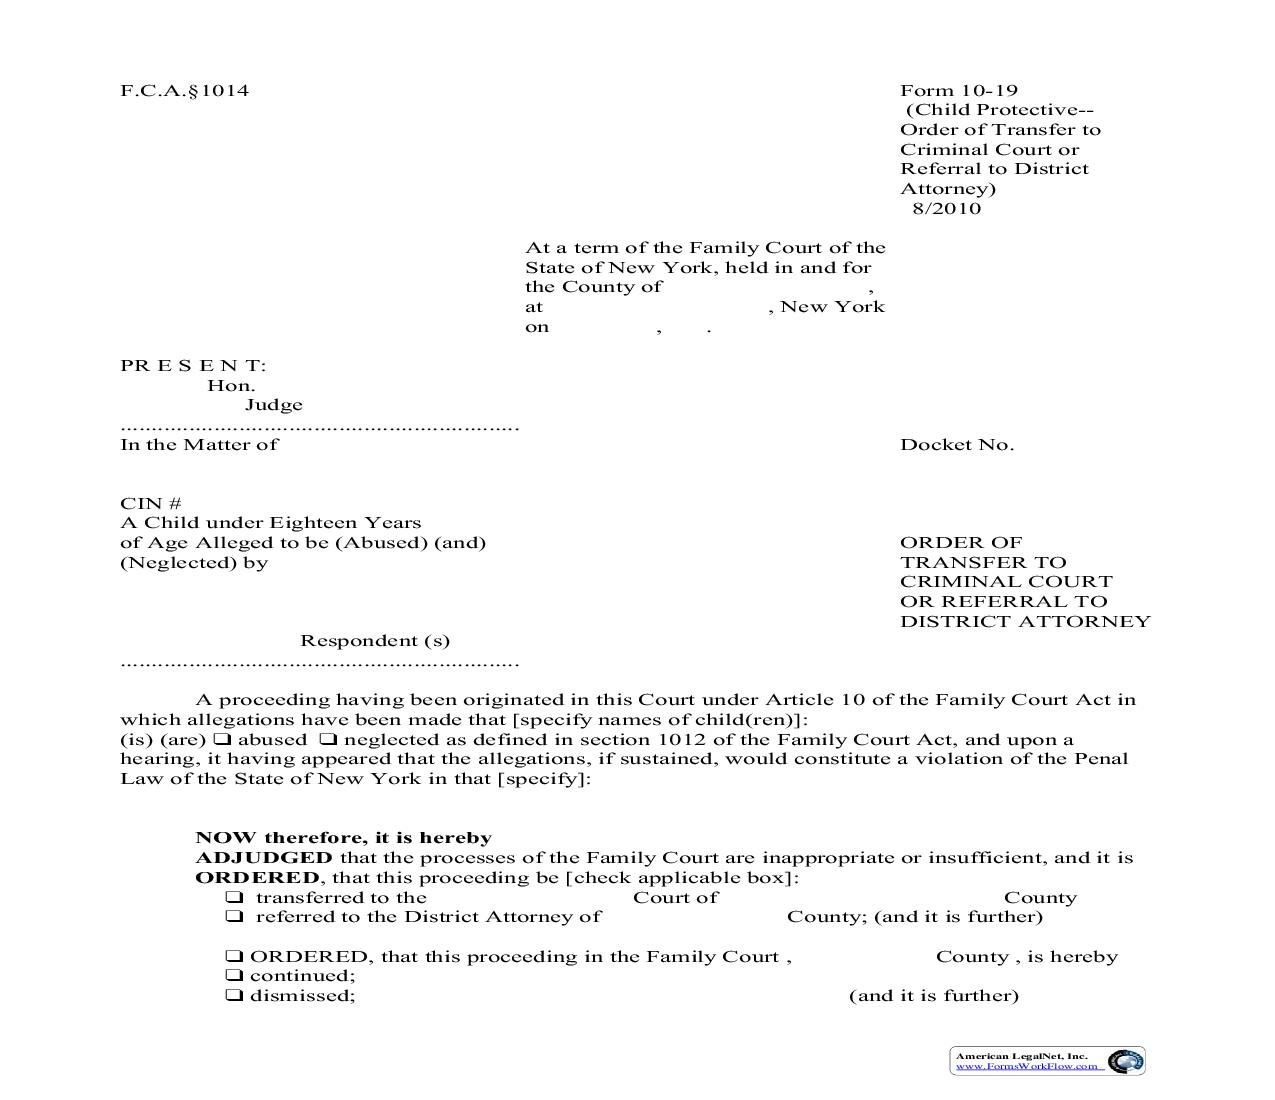 Order Of Transfer To Criminal Court Or Referral To District Attorney {10-19}   Pdf Fpdf Doc Docx   New York